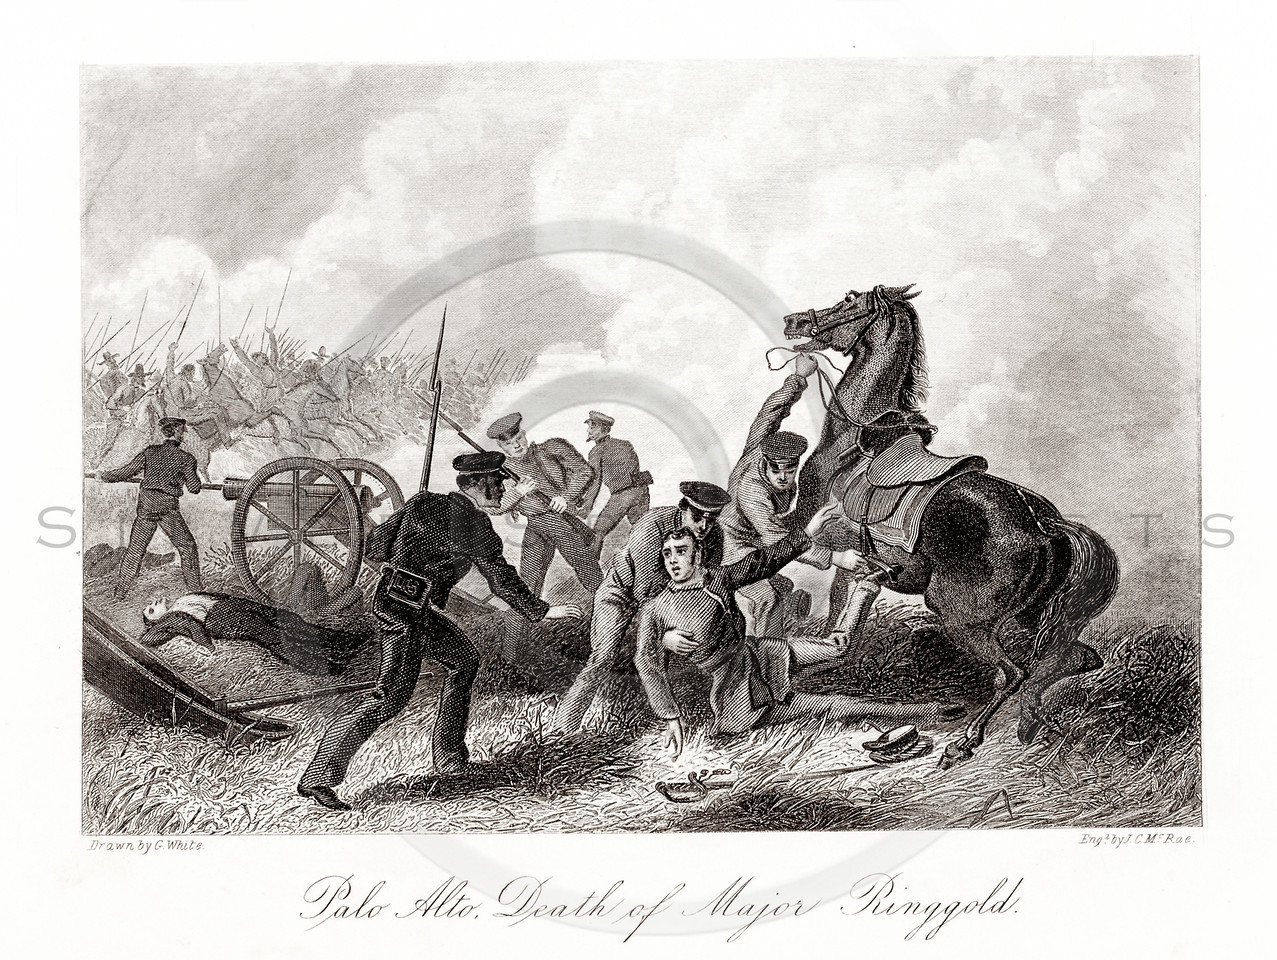 Vintage 1800s Sepia Illustration of the Death of Major Ringgold.  The natural patina, age-toning, imperfections, and old paper antiquing of this vintage 19th century illustration are preserved in this image.